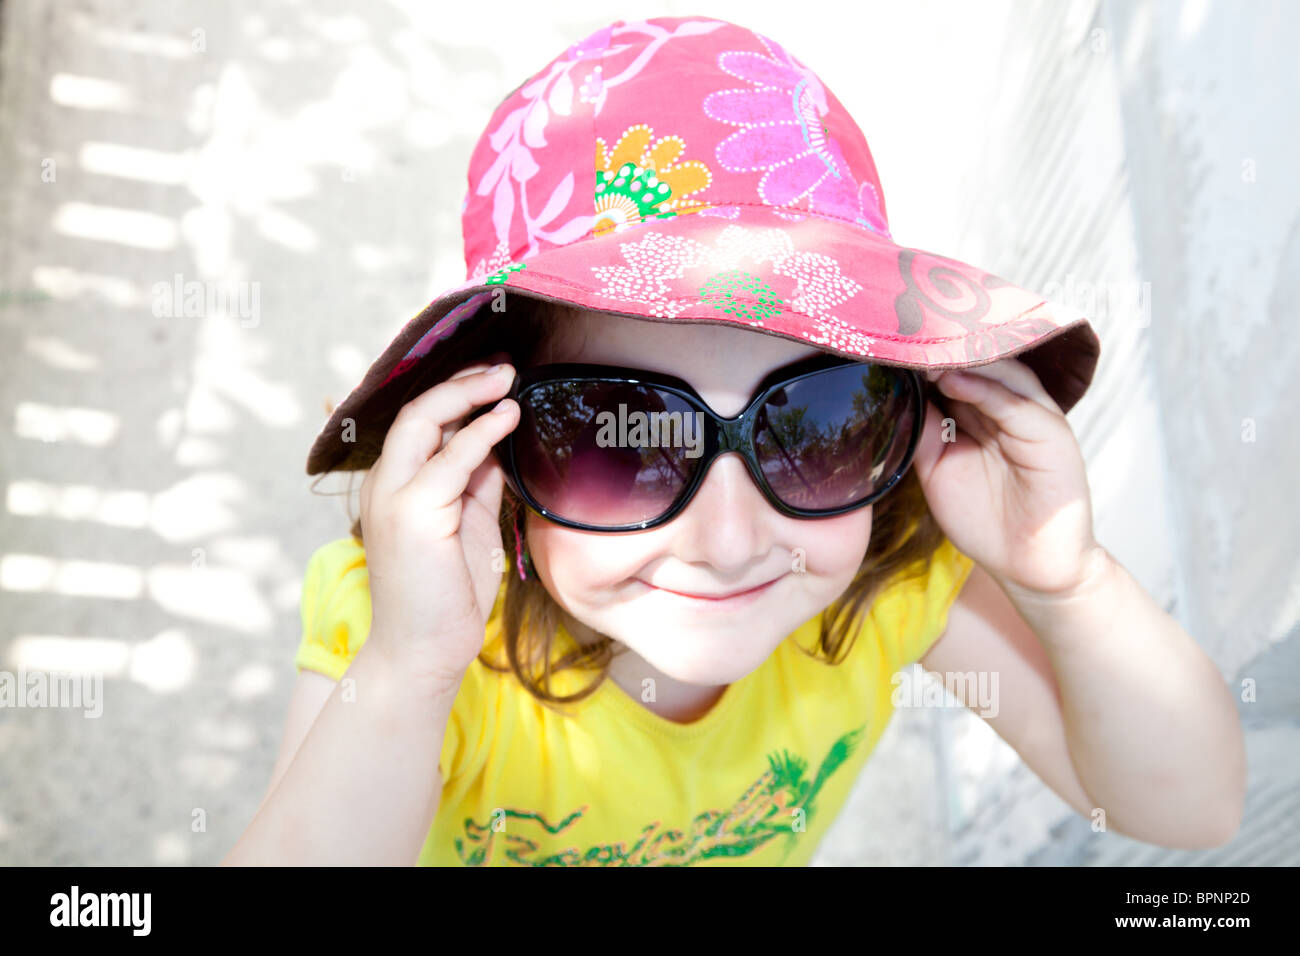 9540cd31cae8 Little girl wearing a pink hat trying on her mom's sun glasses. - Stock  Image